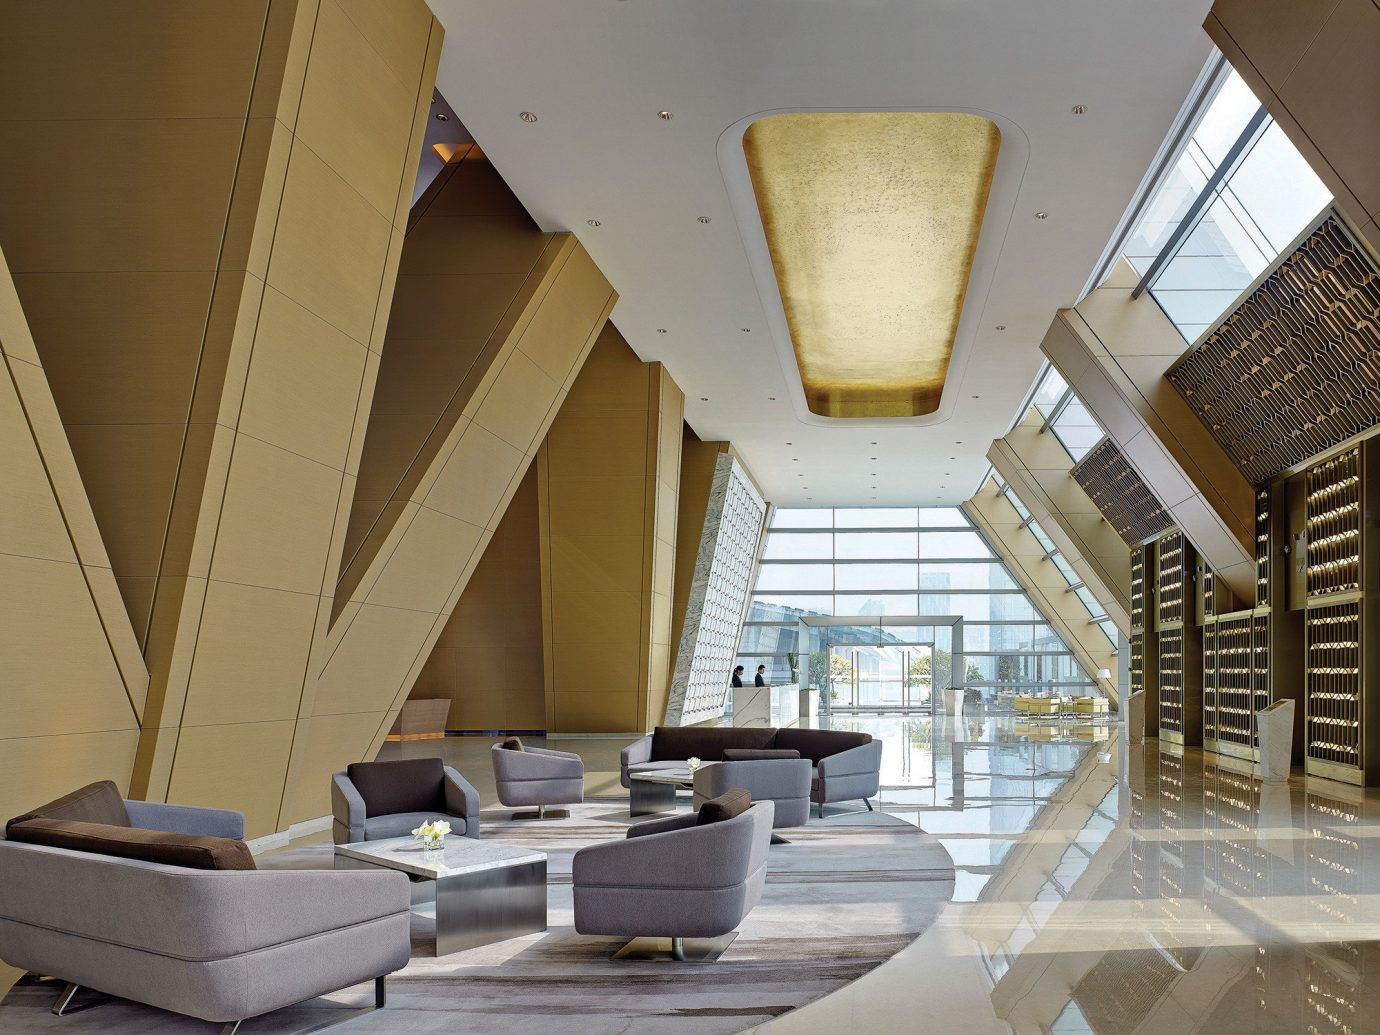 Hotels indoor room building Architecture Lobby ceiling floor daylighting interior design living room stairs home wood Design tourist attraction window covering furniture